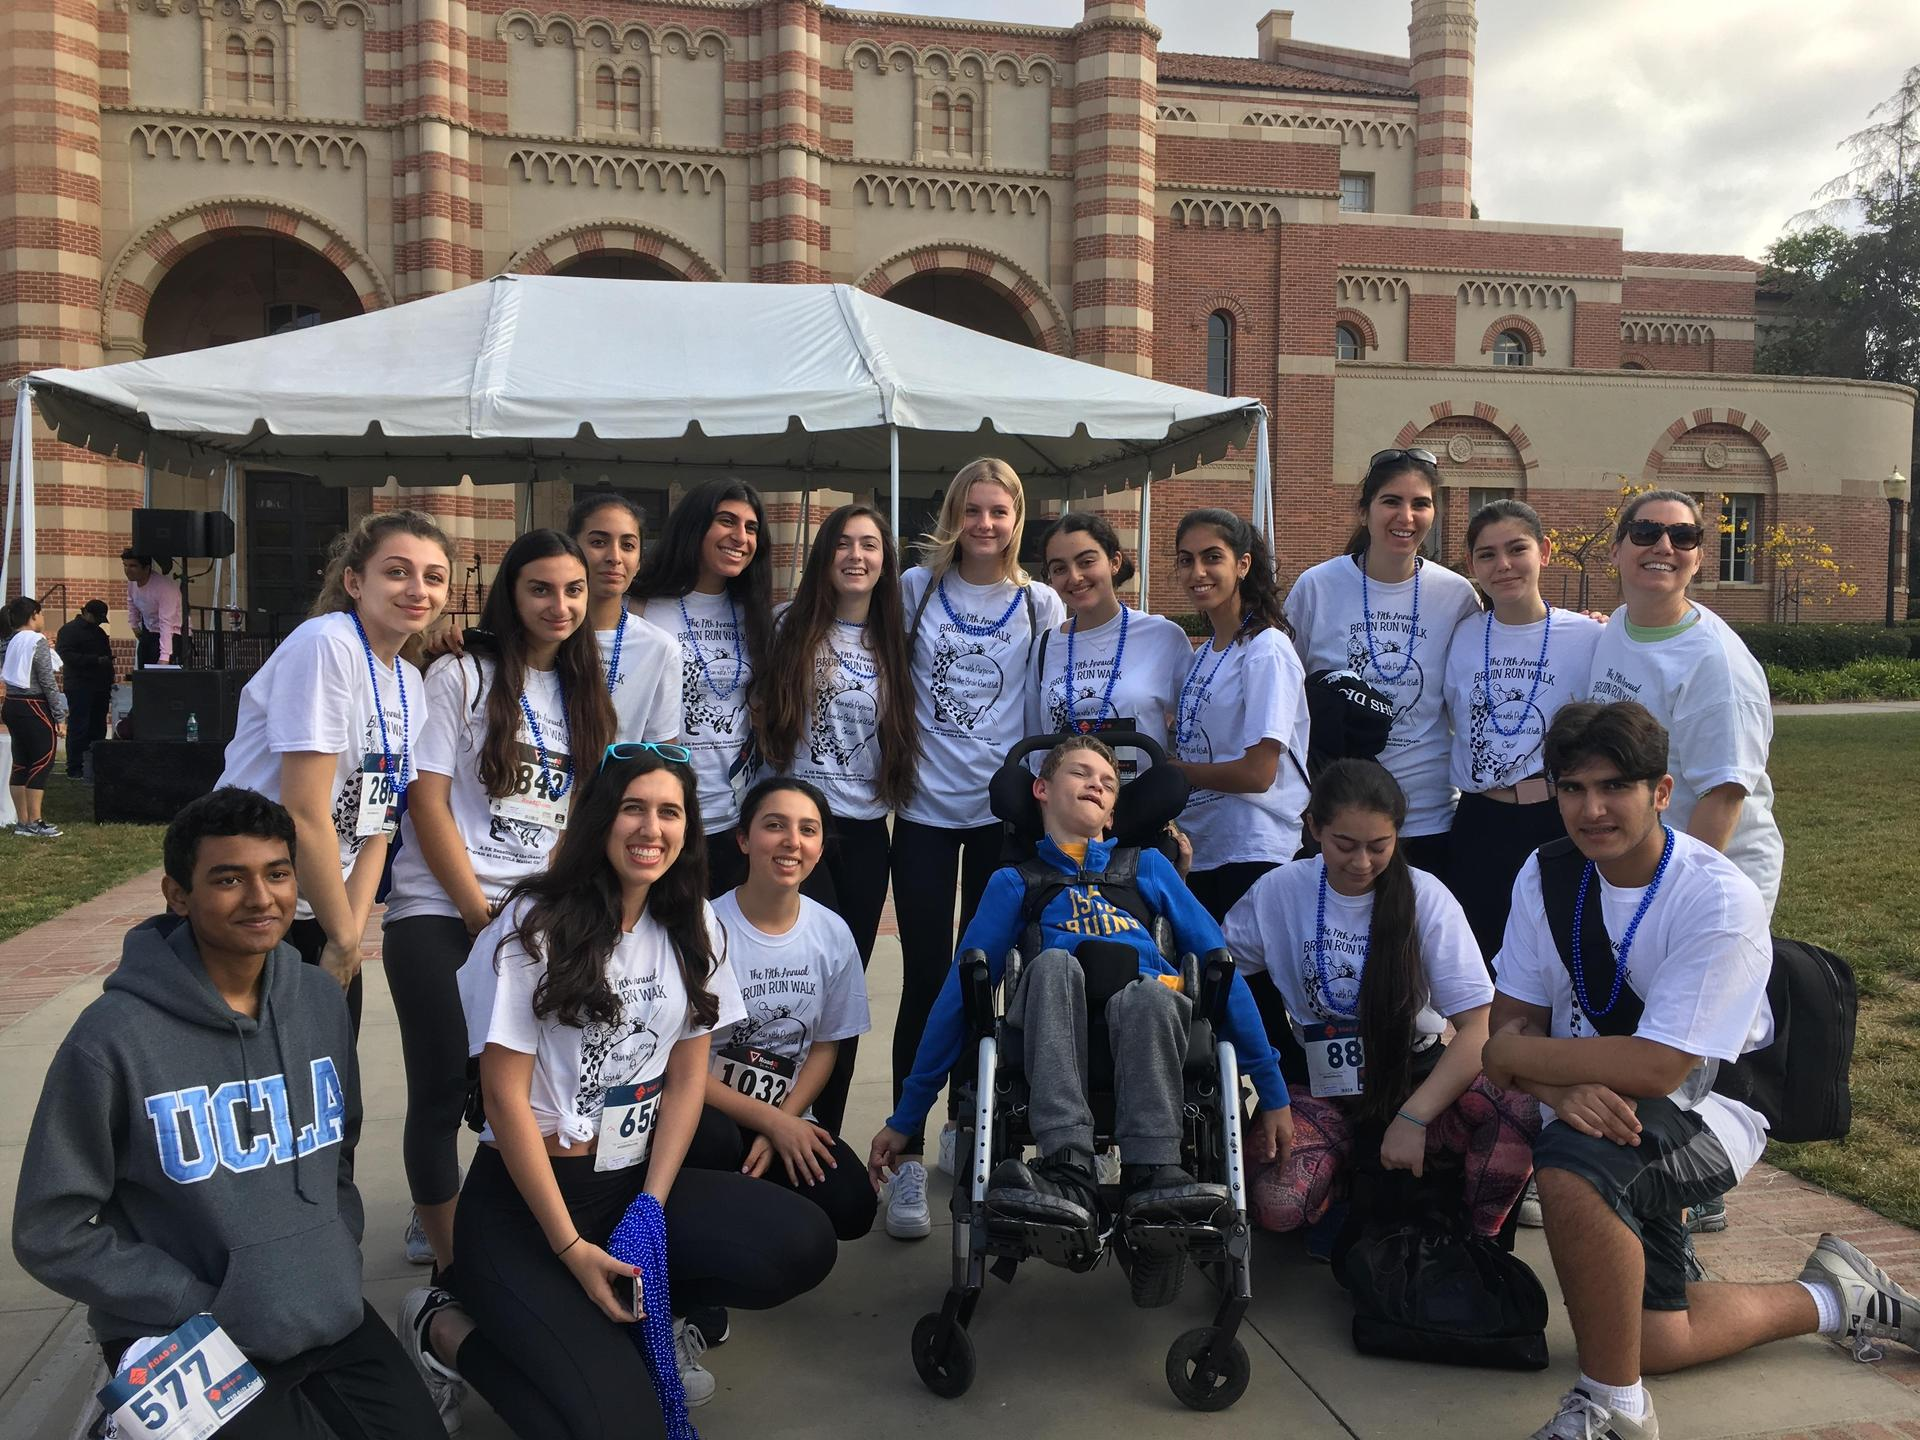 MSA students at Bruin's Run/Walk supporting Team Casey